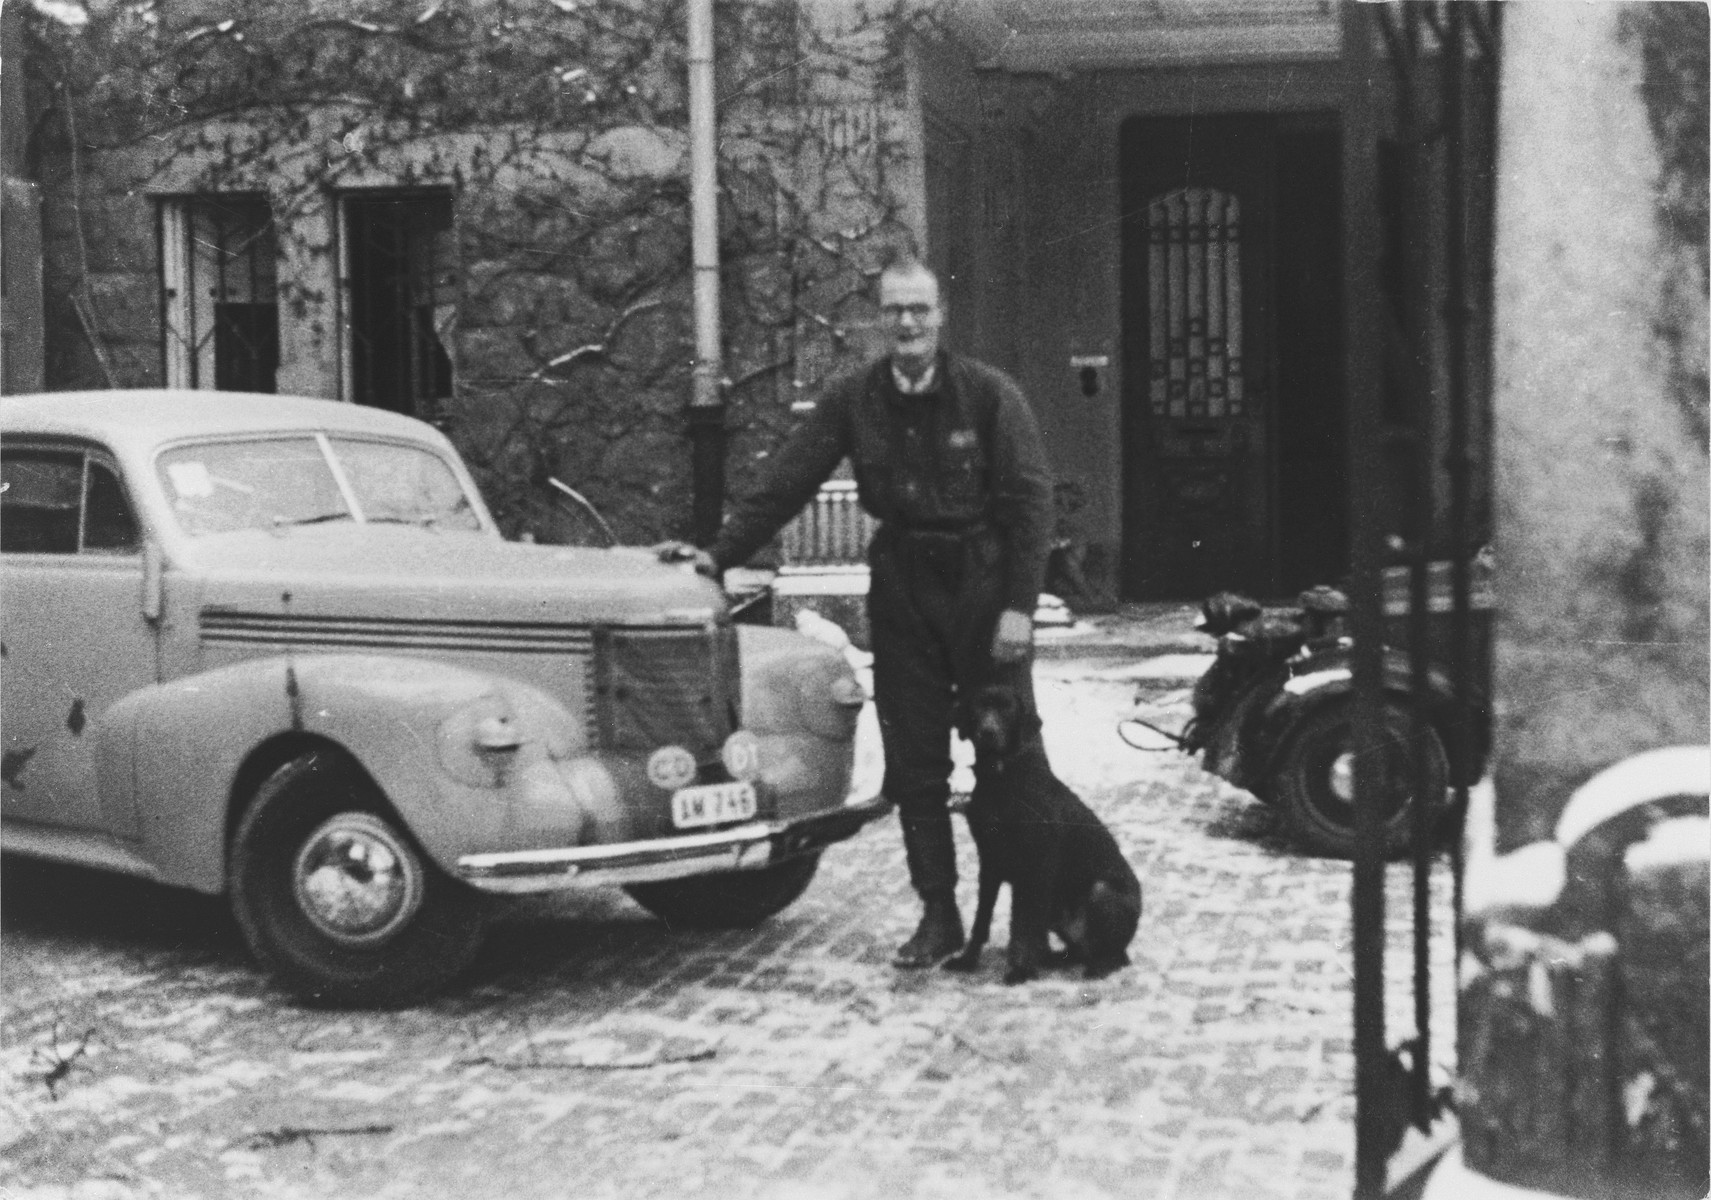 Lars Berg, a member of the Swedish legation in Budapest, 1944-45, poses with his dog next to a car.   Berg has been honored by Yad Vashem for his involvement in the rescue of Budapest Jews in the last year of the war.